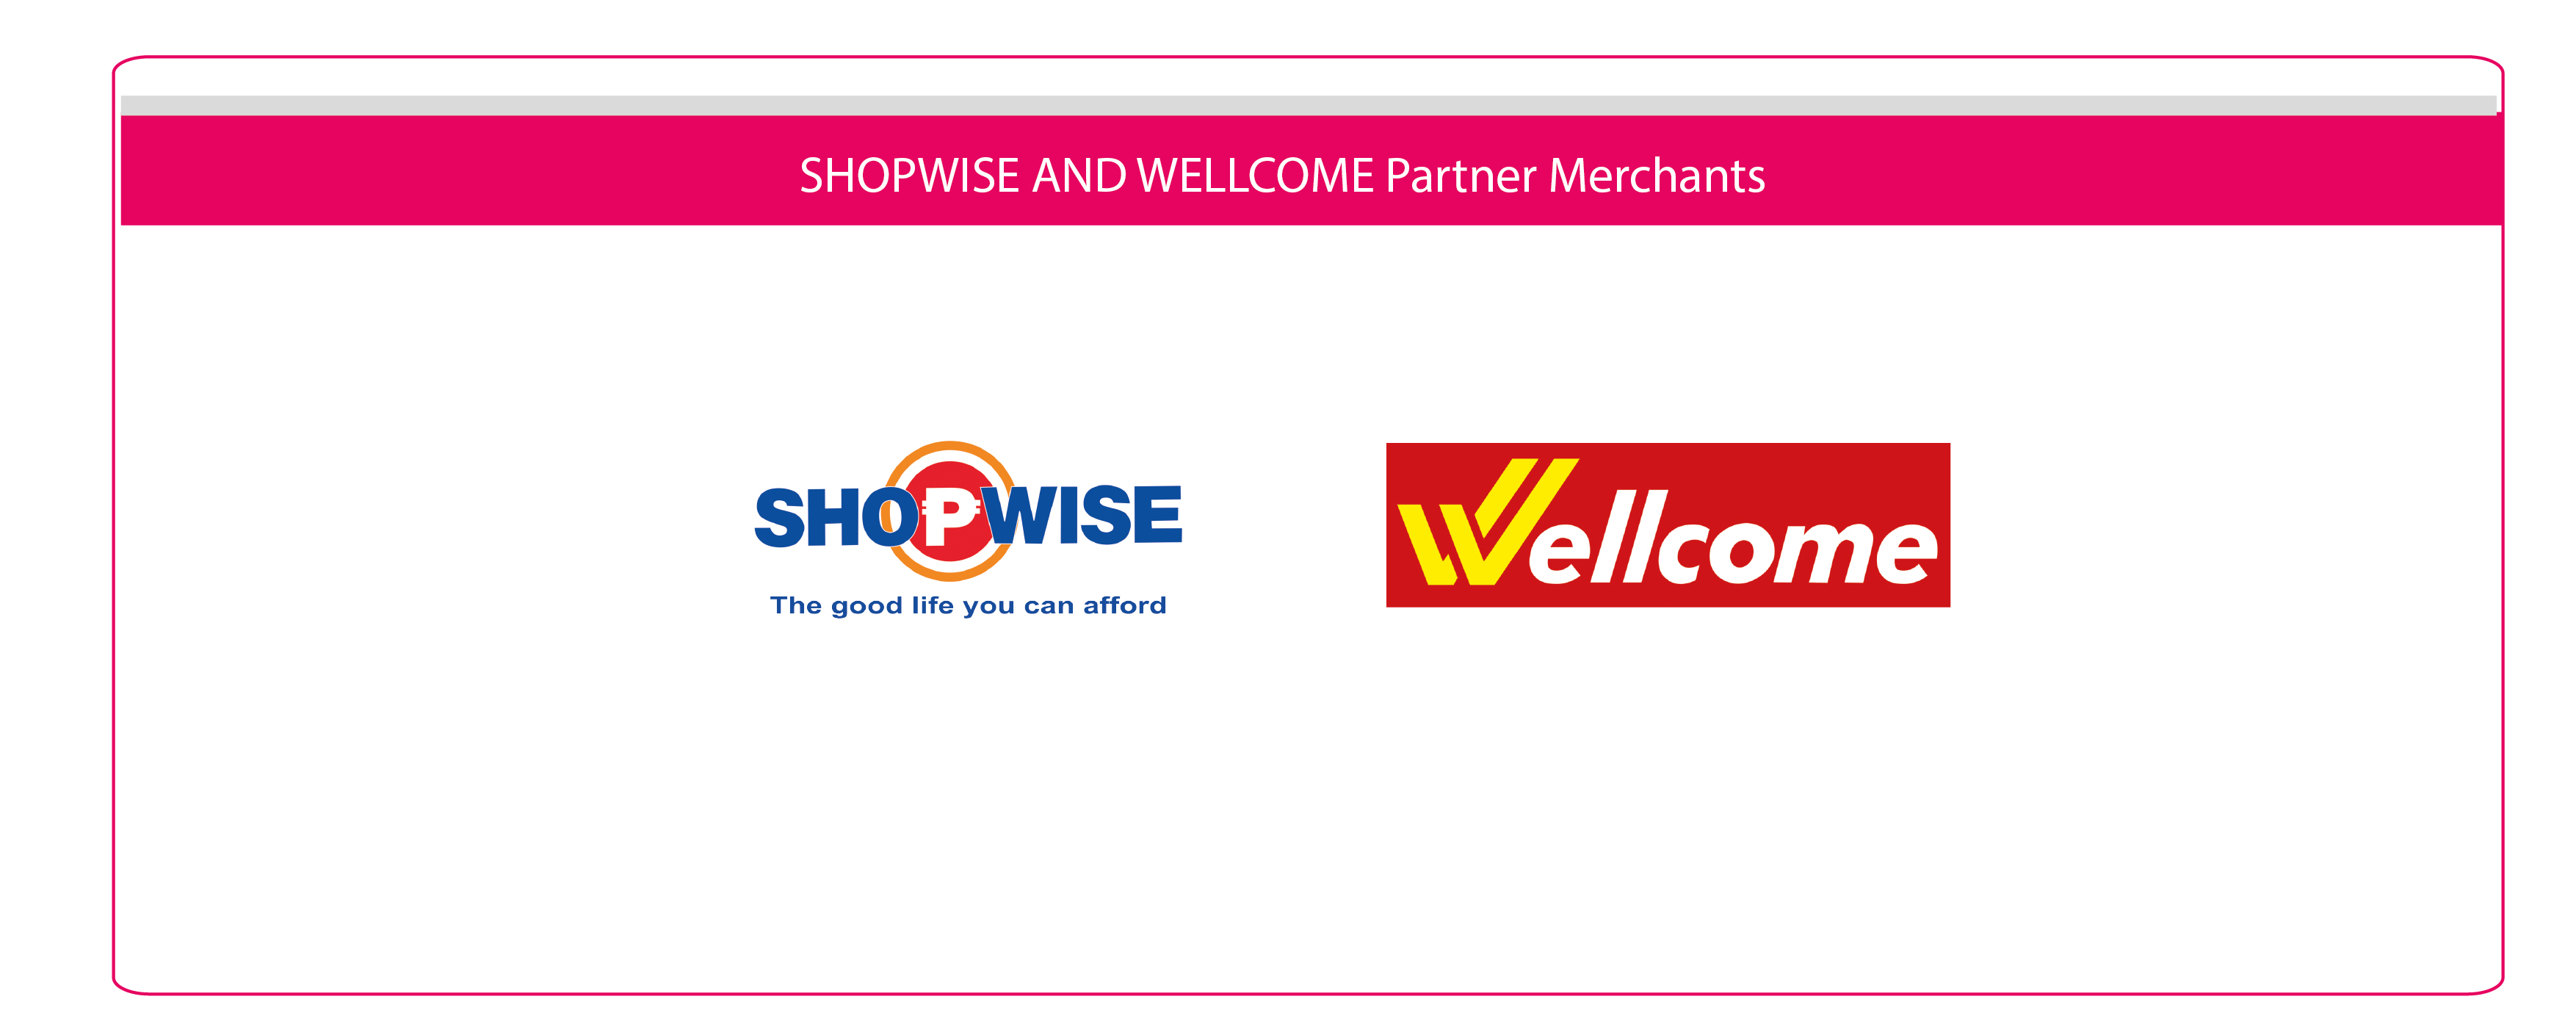 3508x1409 Shopwise And Wellcome Gift Certificate